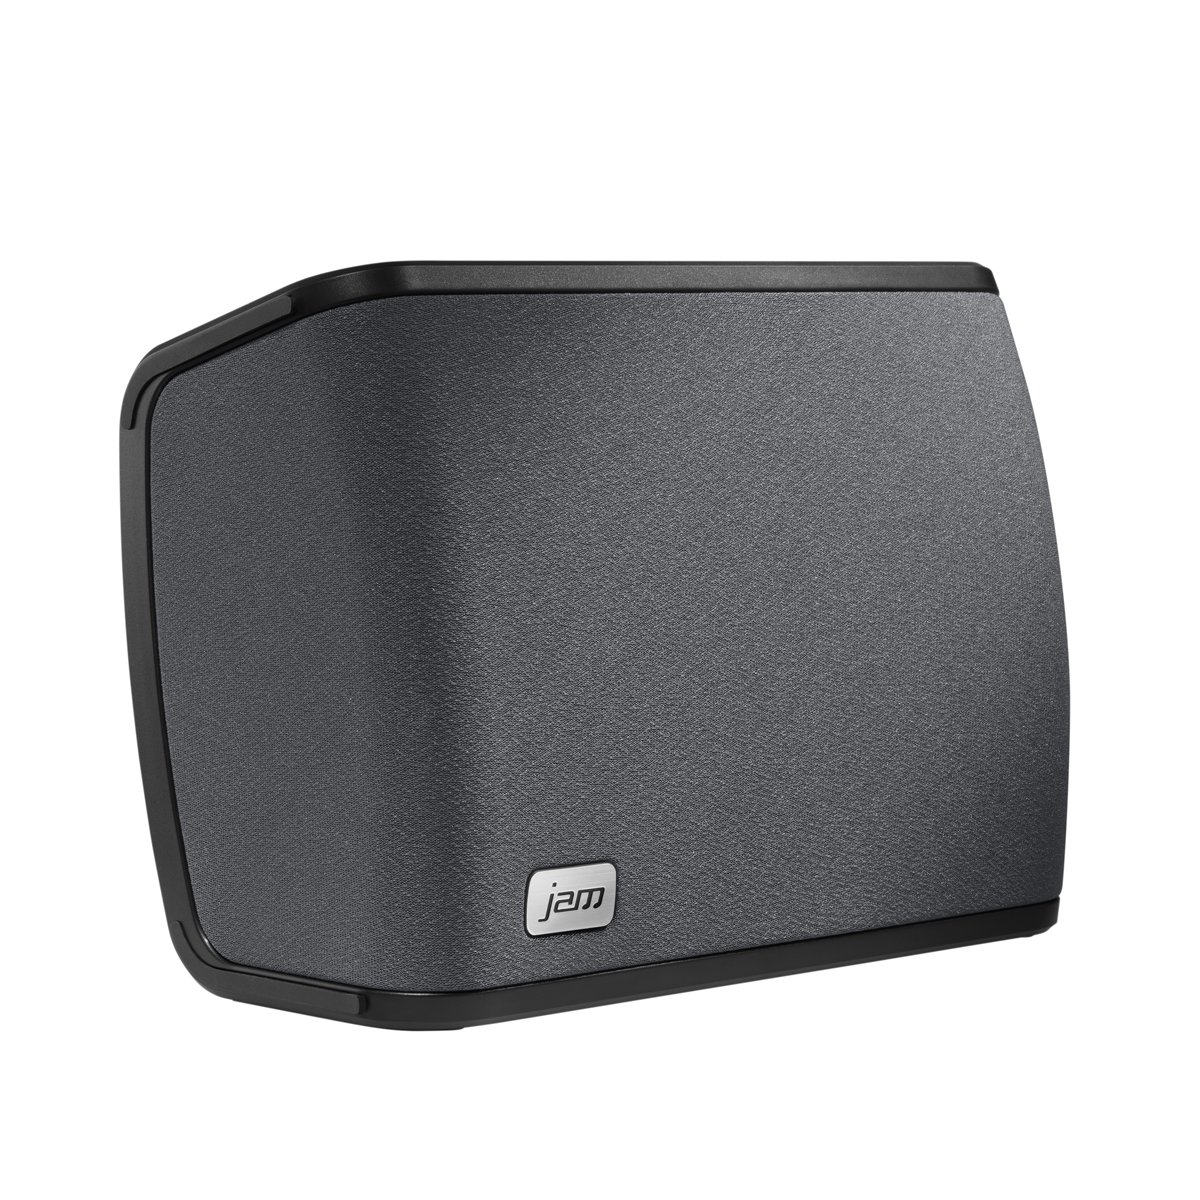 Jam Multi-Room 2.1 Altavoz WiFi , color Negro